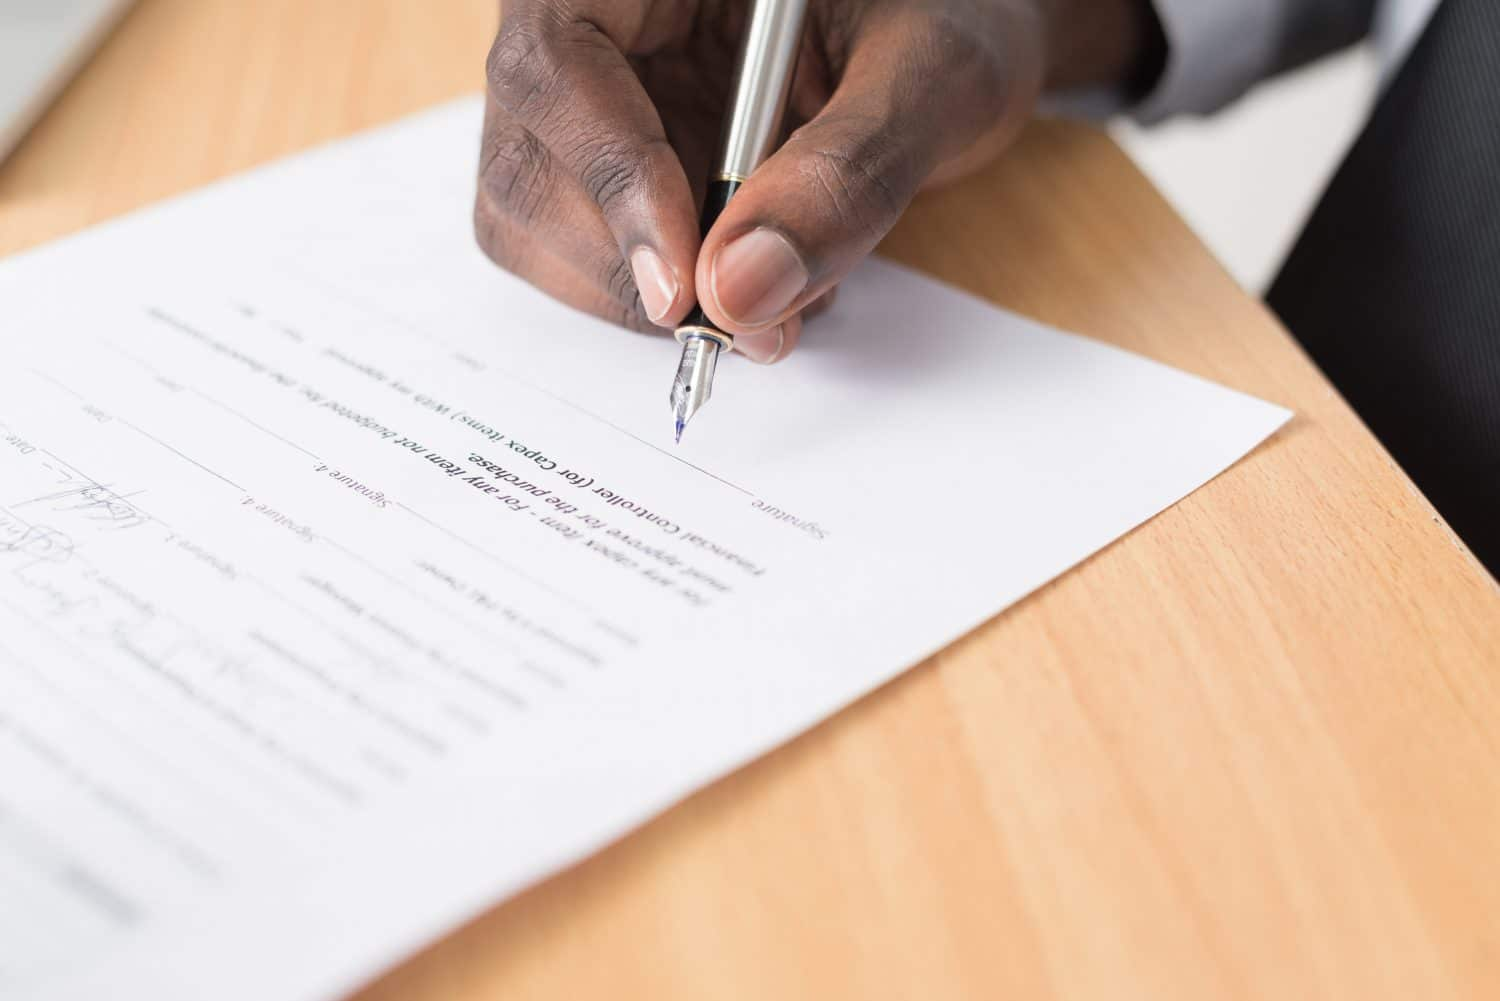 picture of a hand holding a pen about to sign paperwork